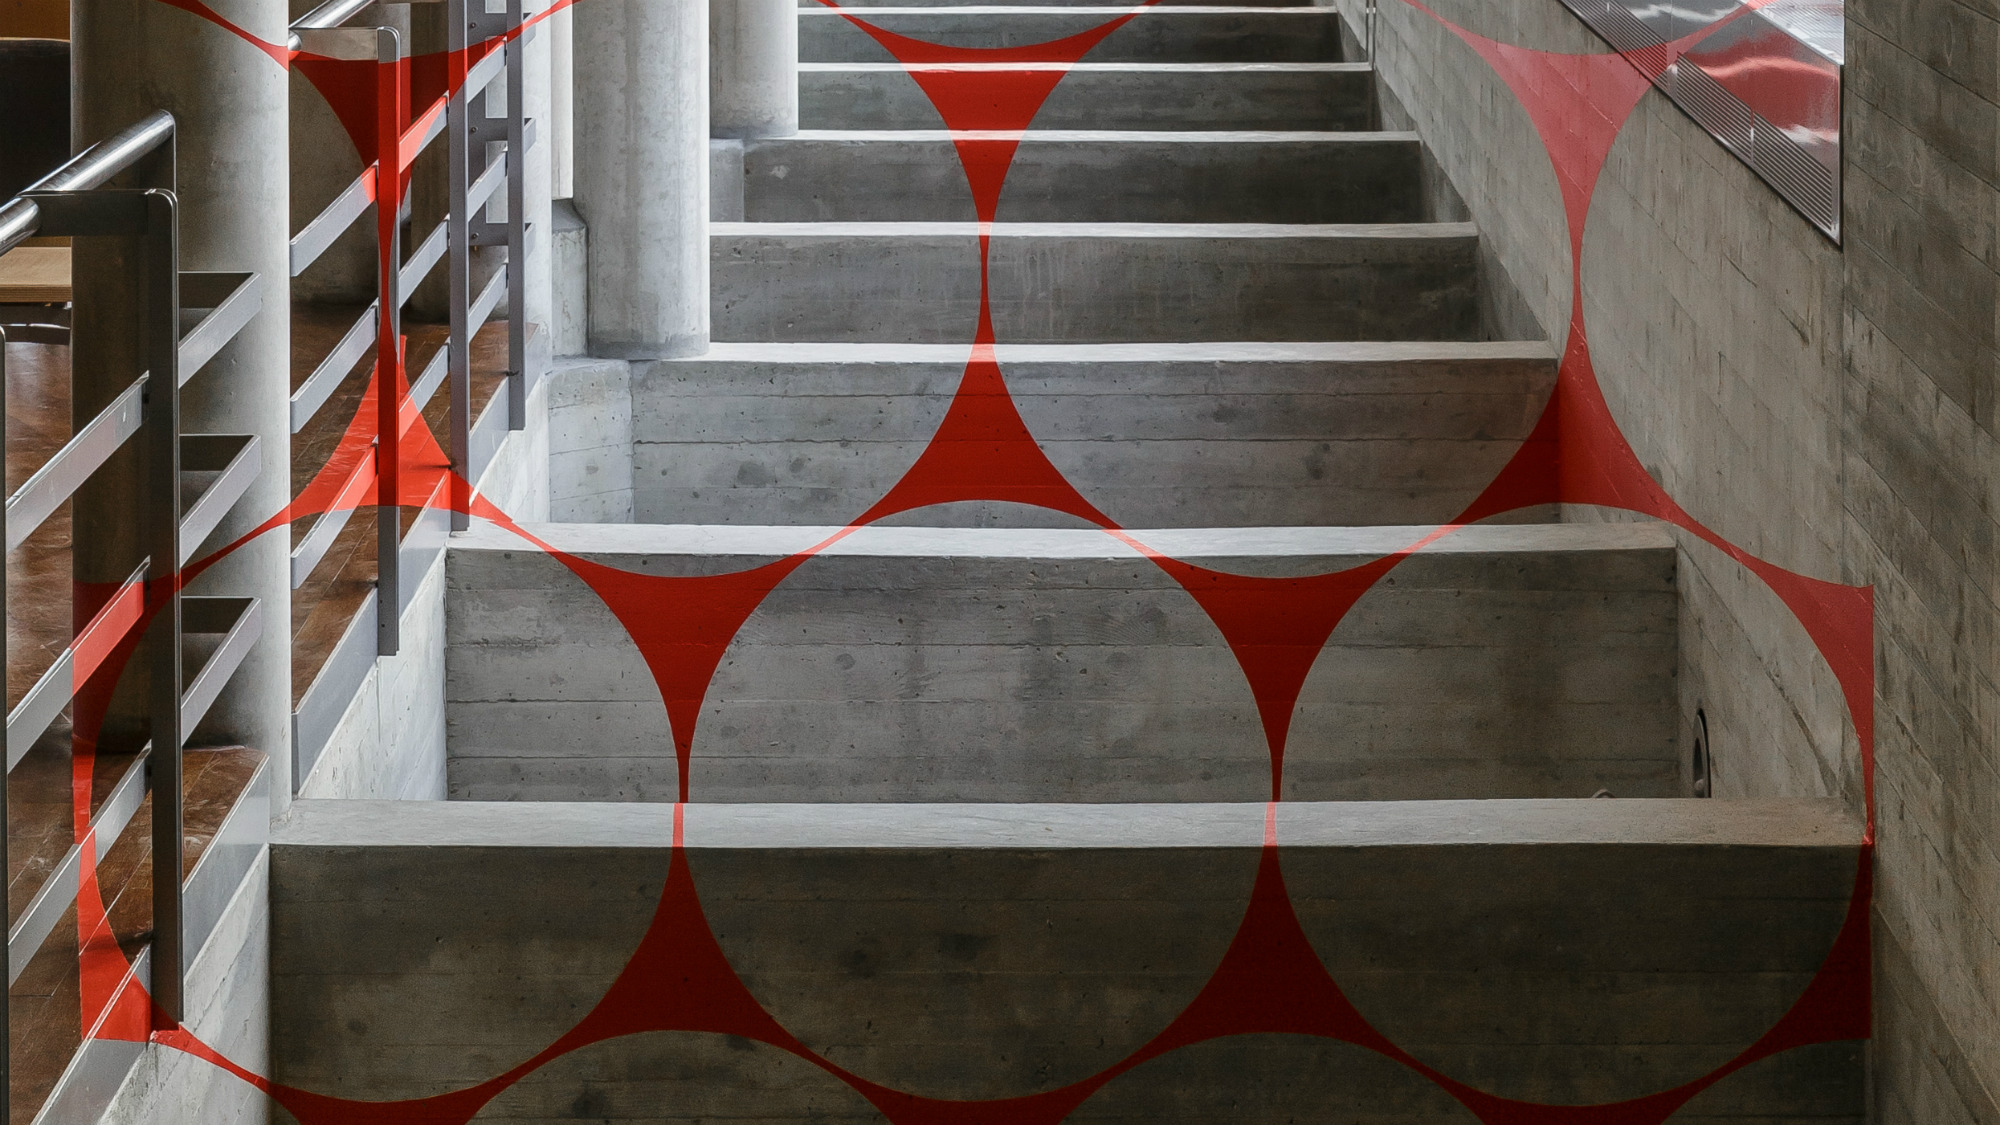 Felice Varini's red, three-dimensional work of art, installed in the Library Building of the University of St.Gallen (HSG)